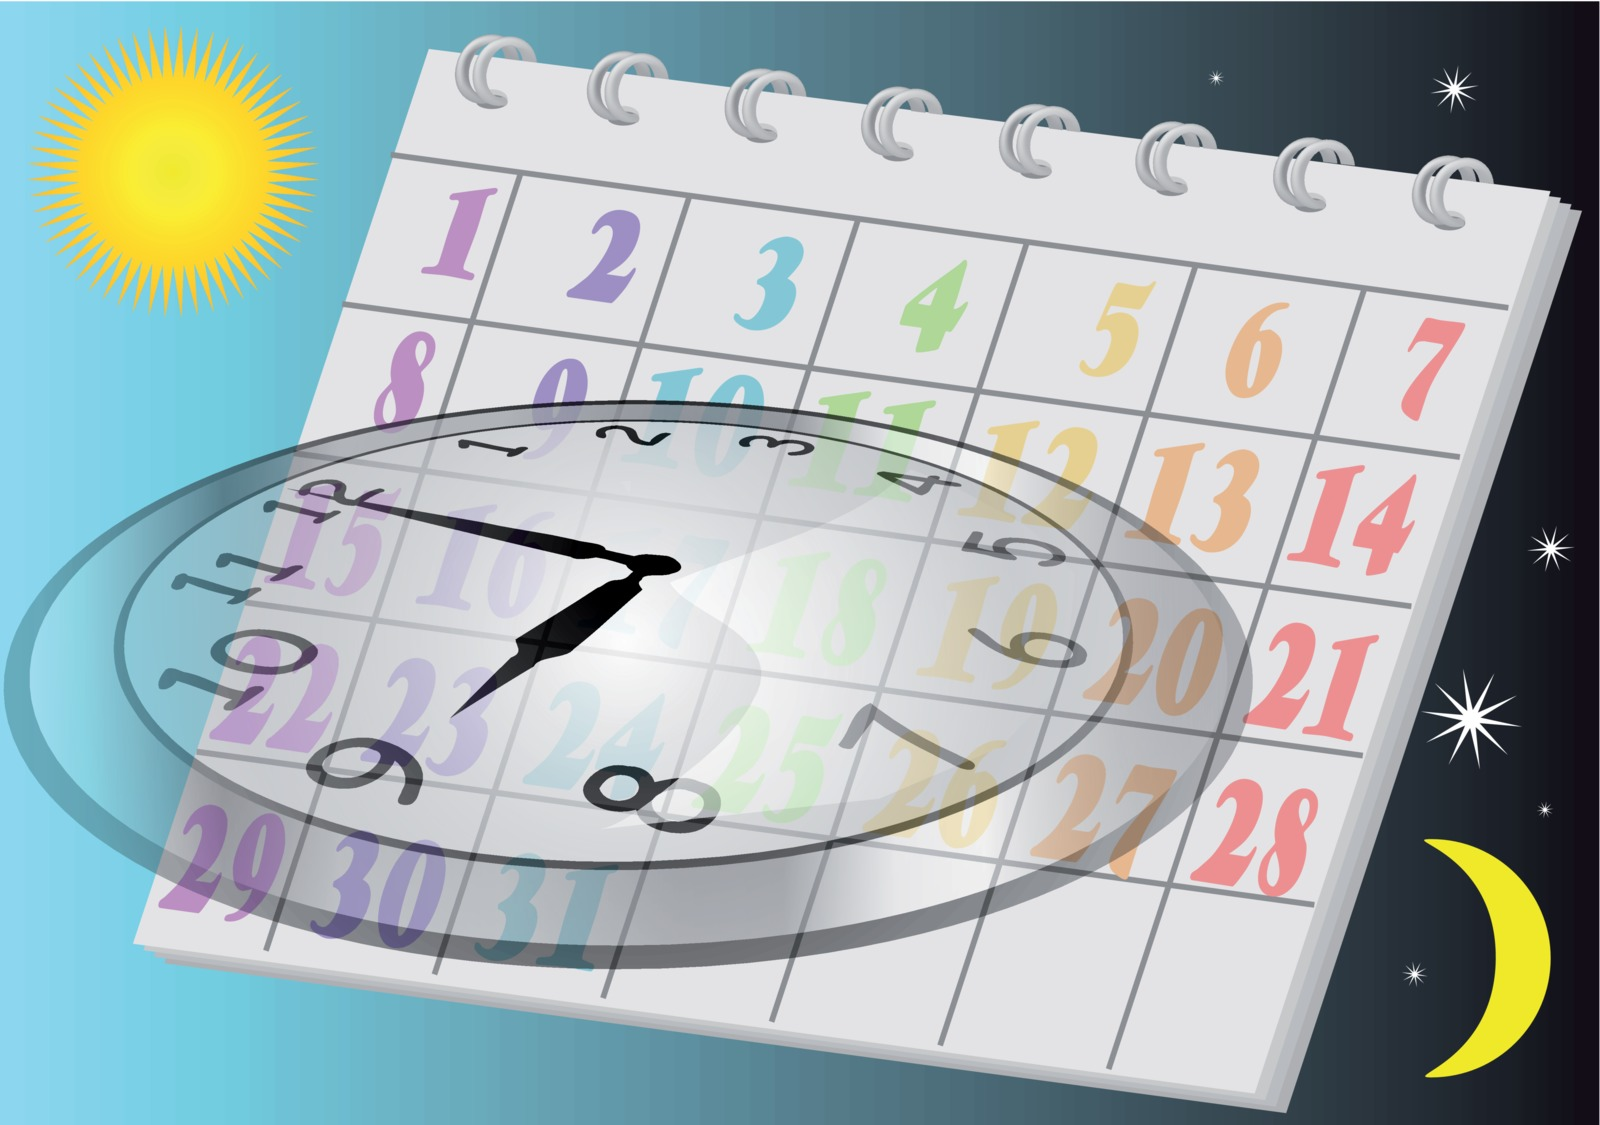 clock and calendar showing moving time to a scottsdale home